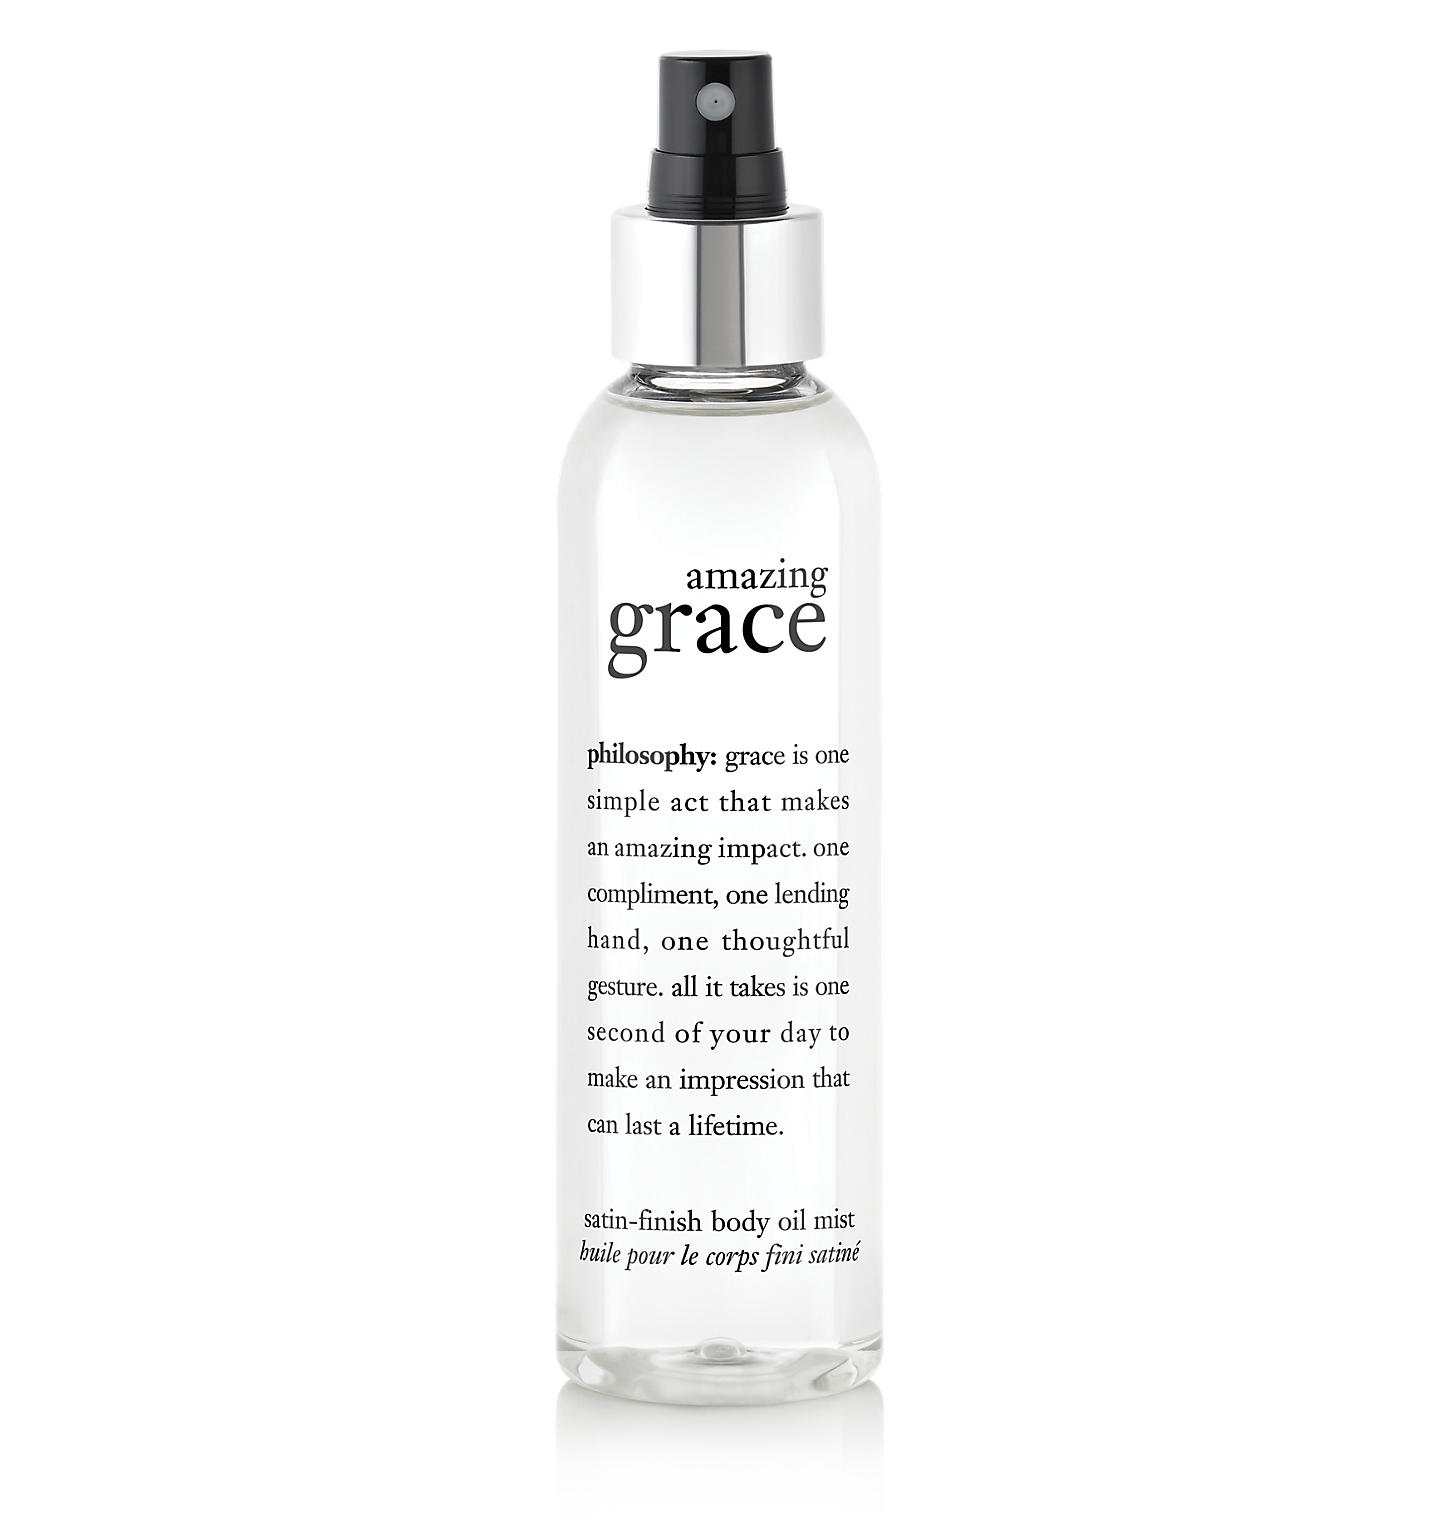 philosophy, amazing grace body oil mist